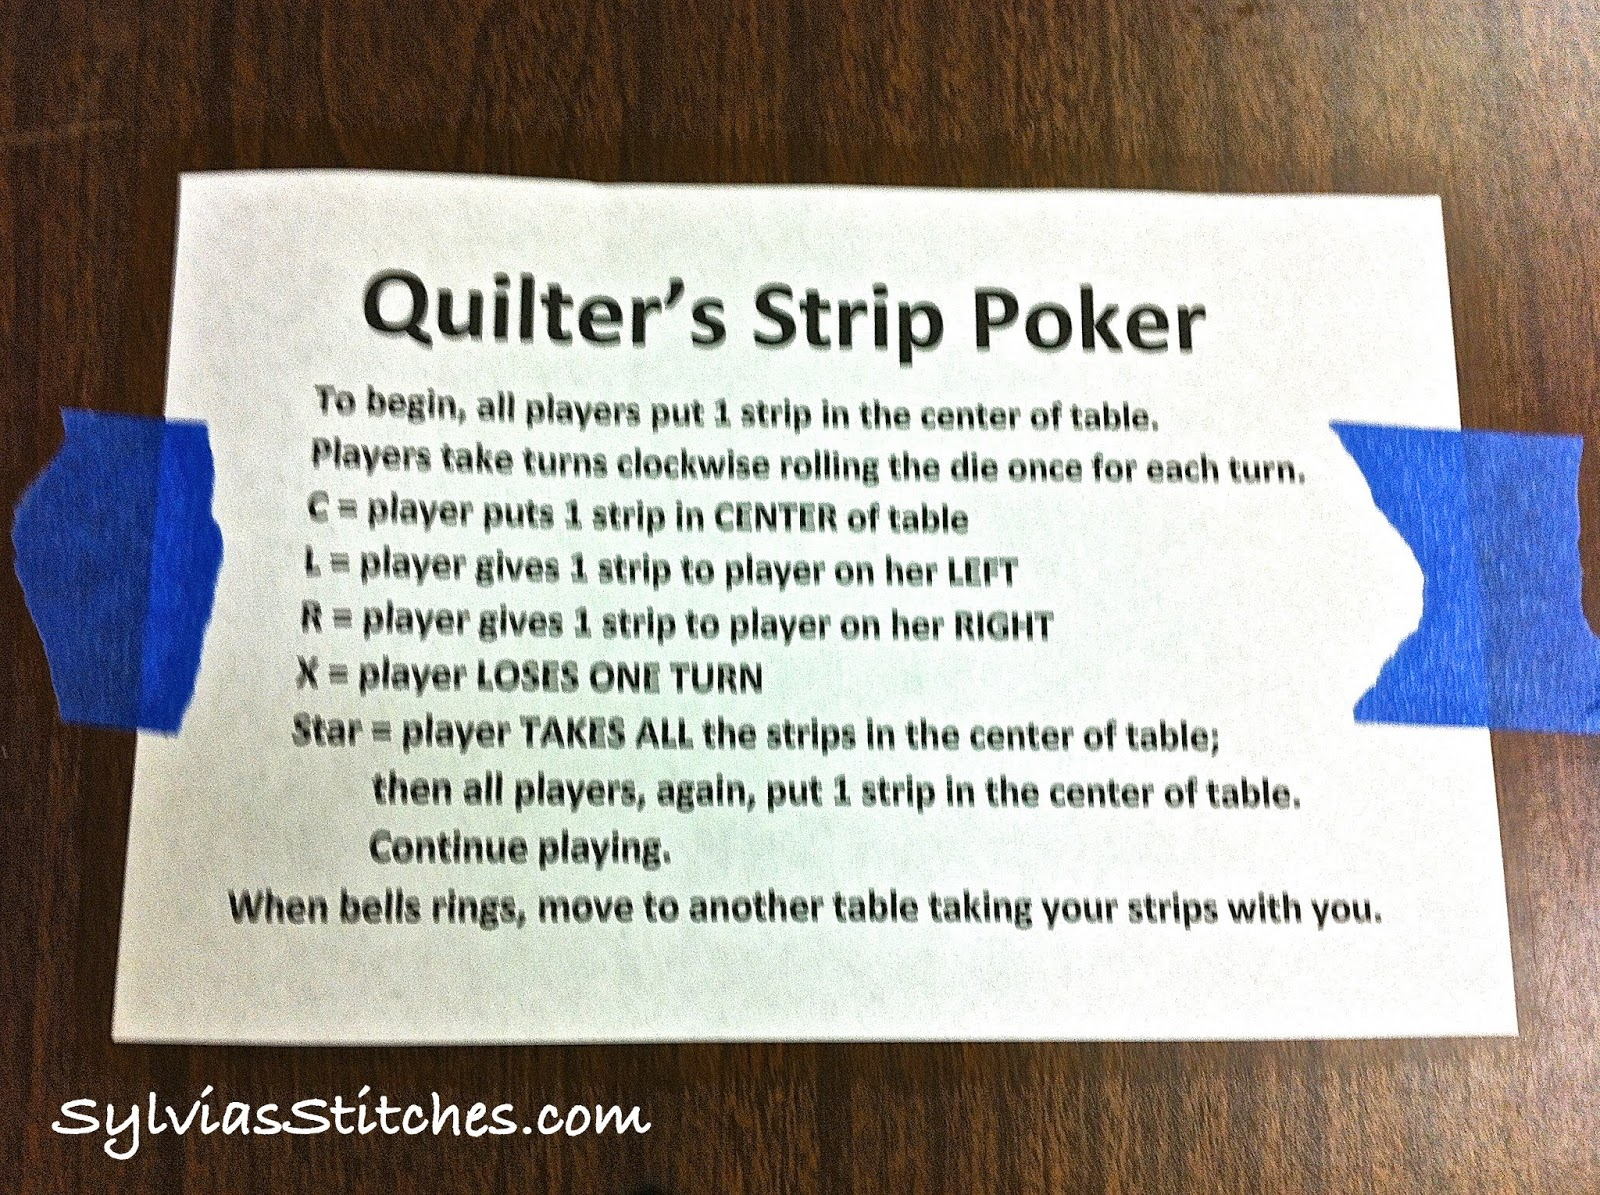 Rule for strip game